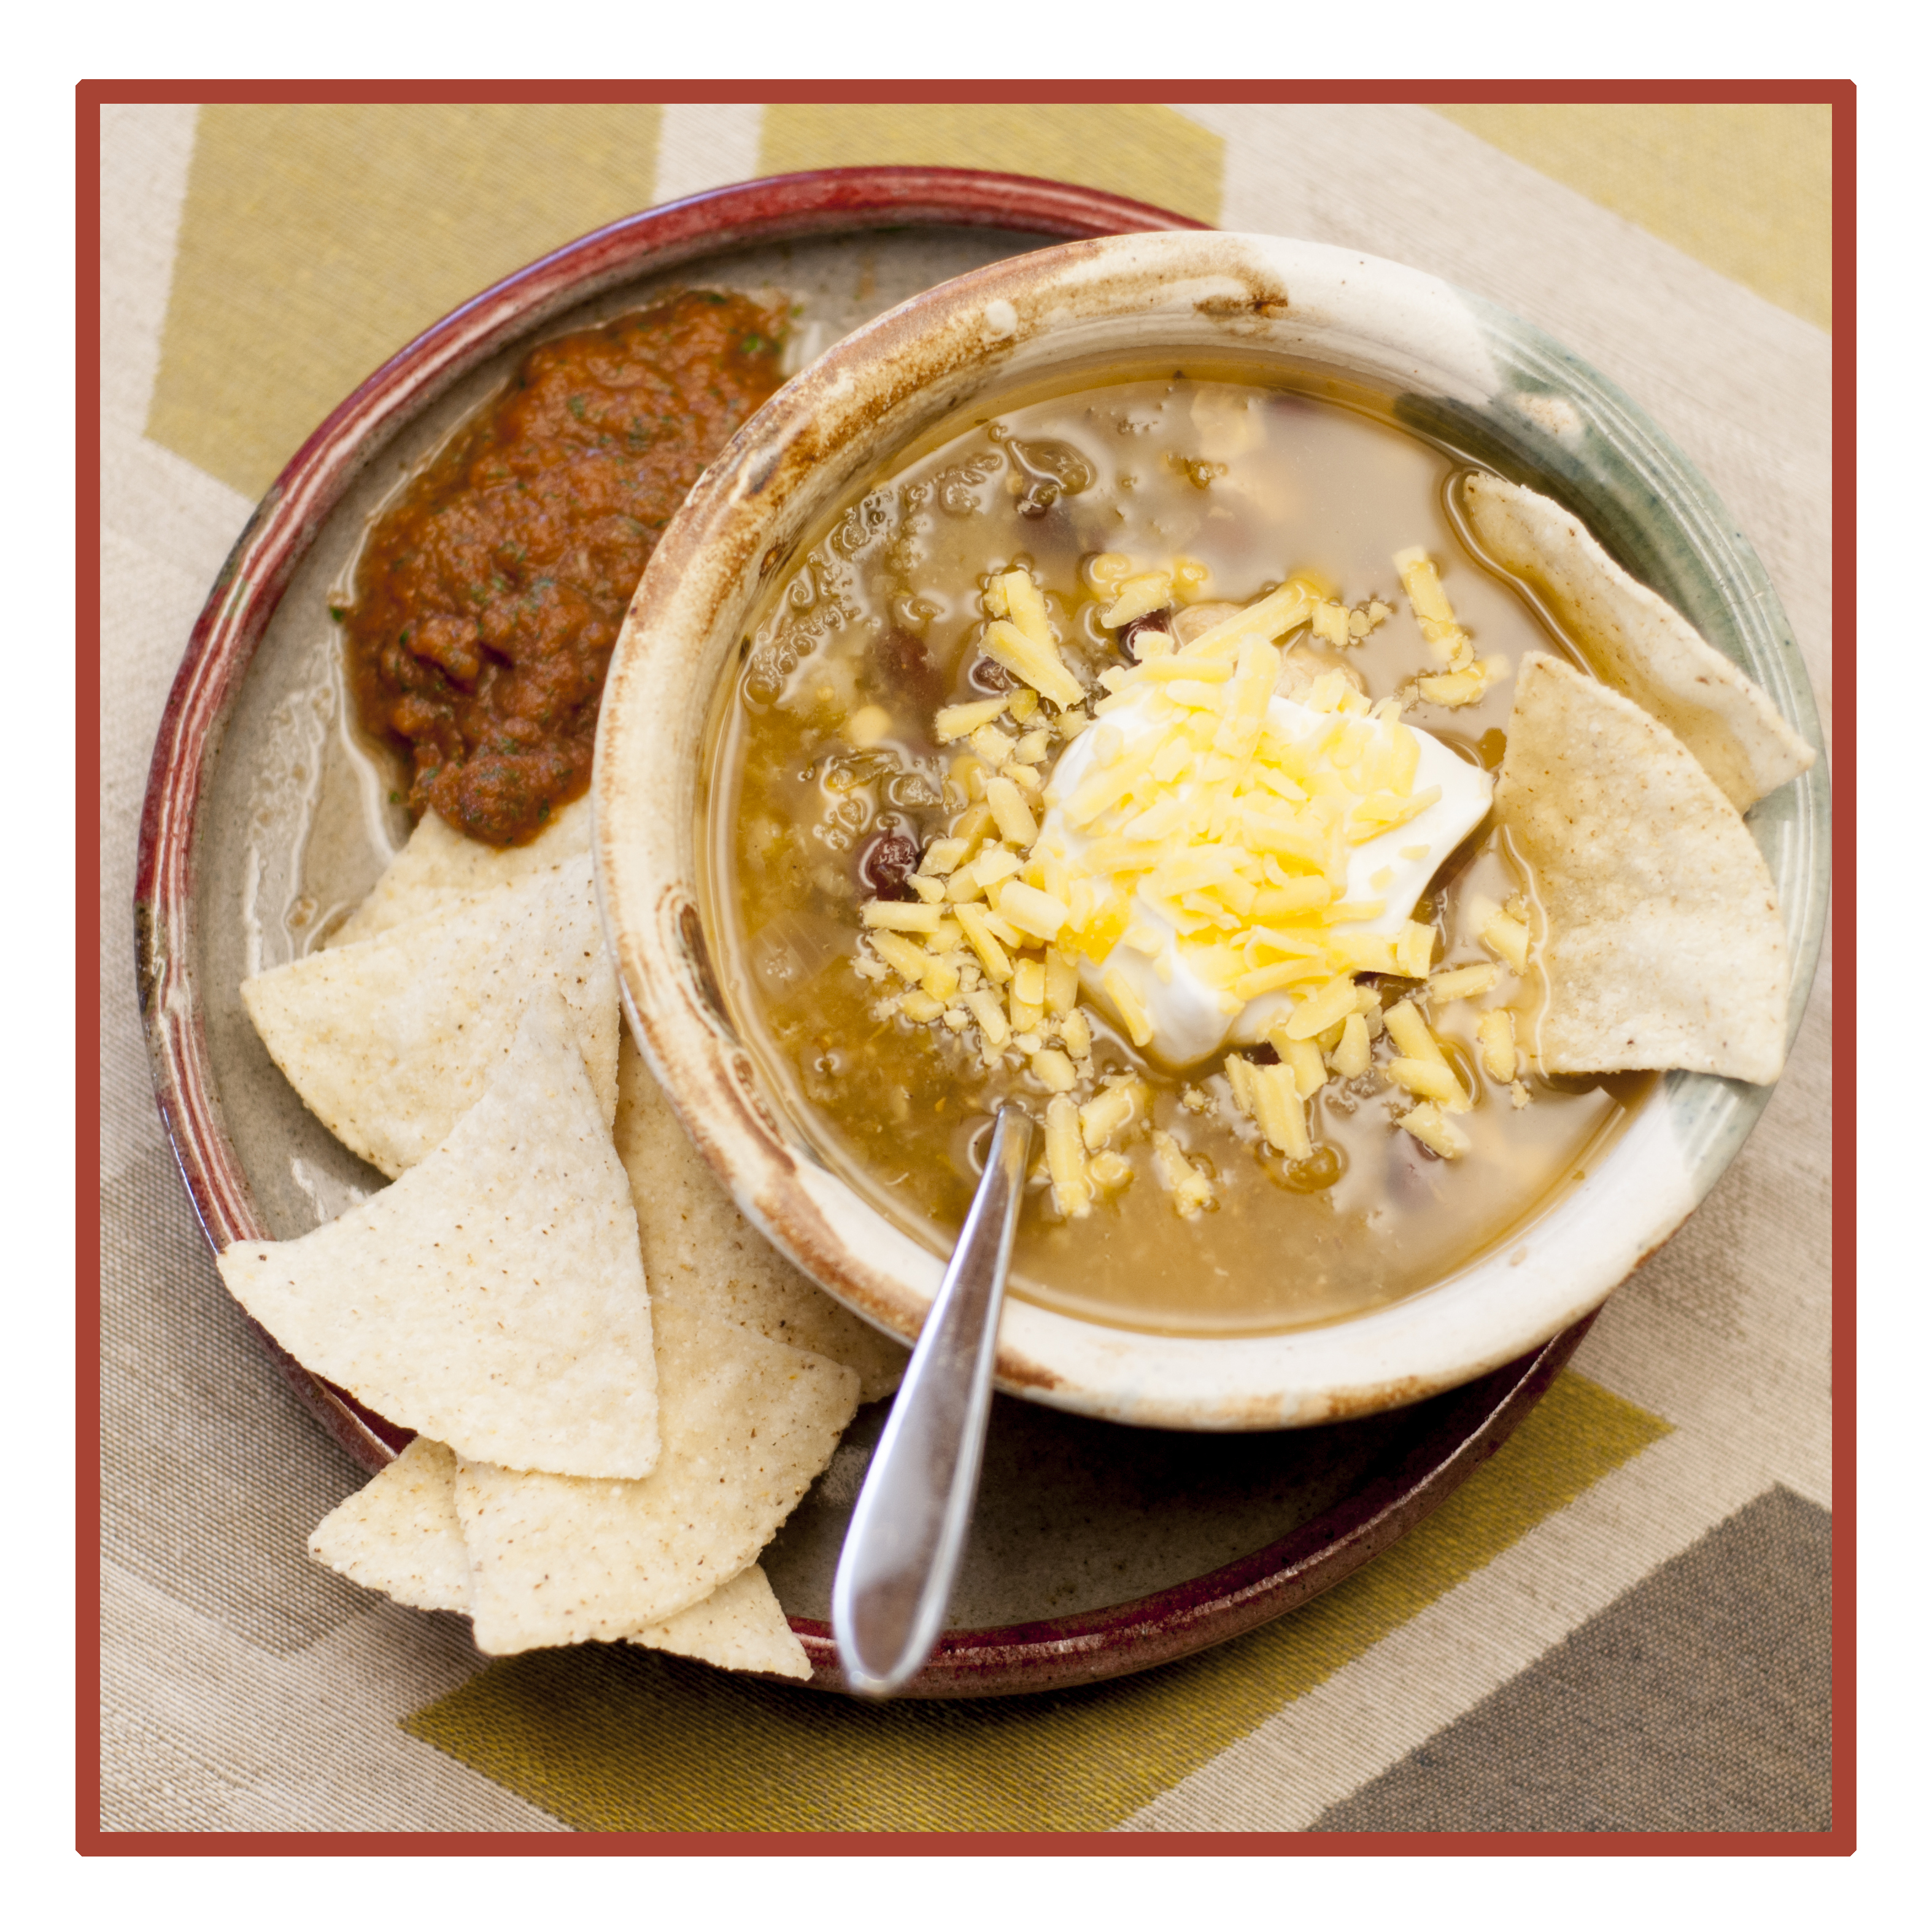 Thermal Cooker White Chicken Chili – A Slow-Cooked Family Favorite